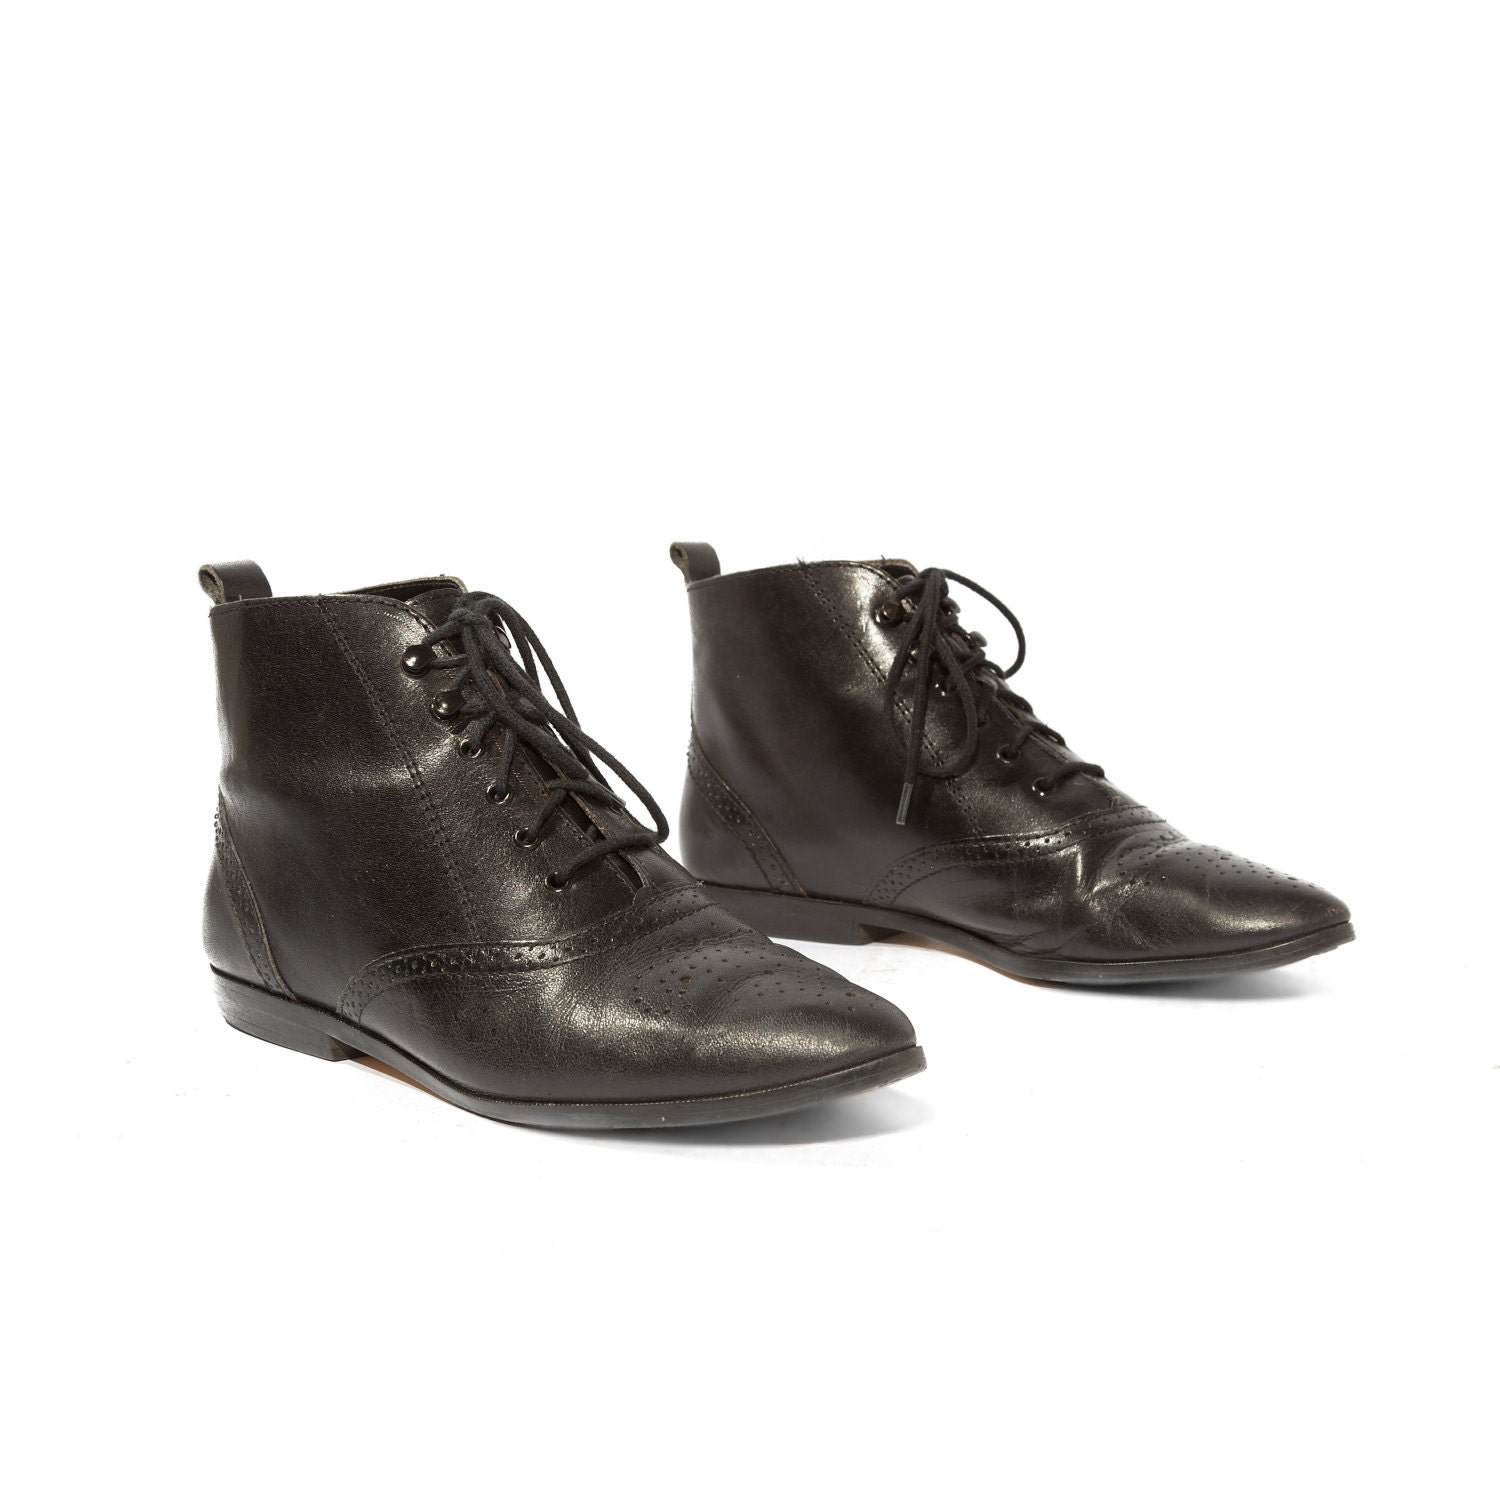 s brogue ankle boots in black leather lace up by